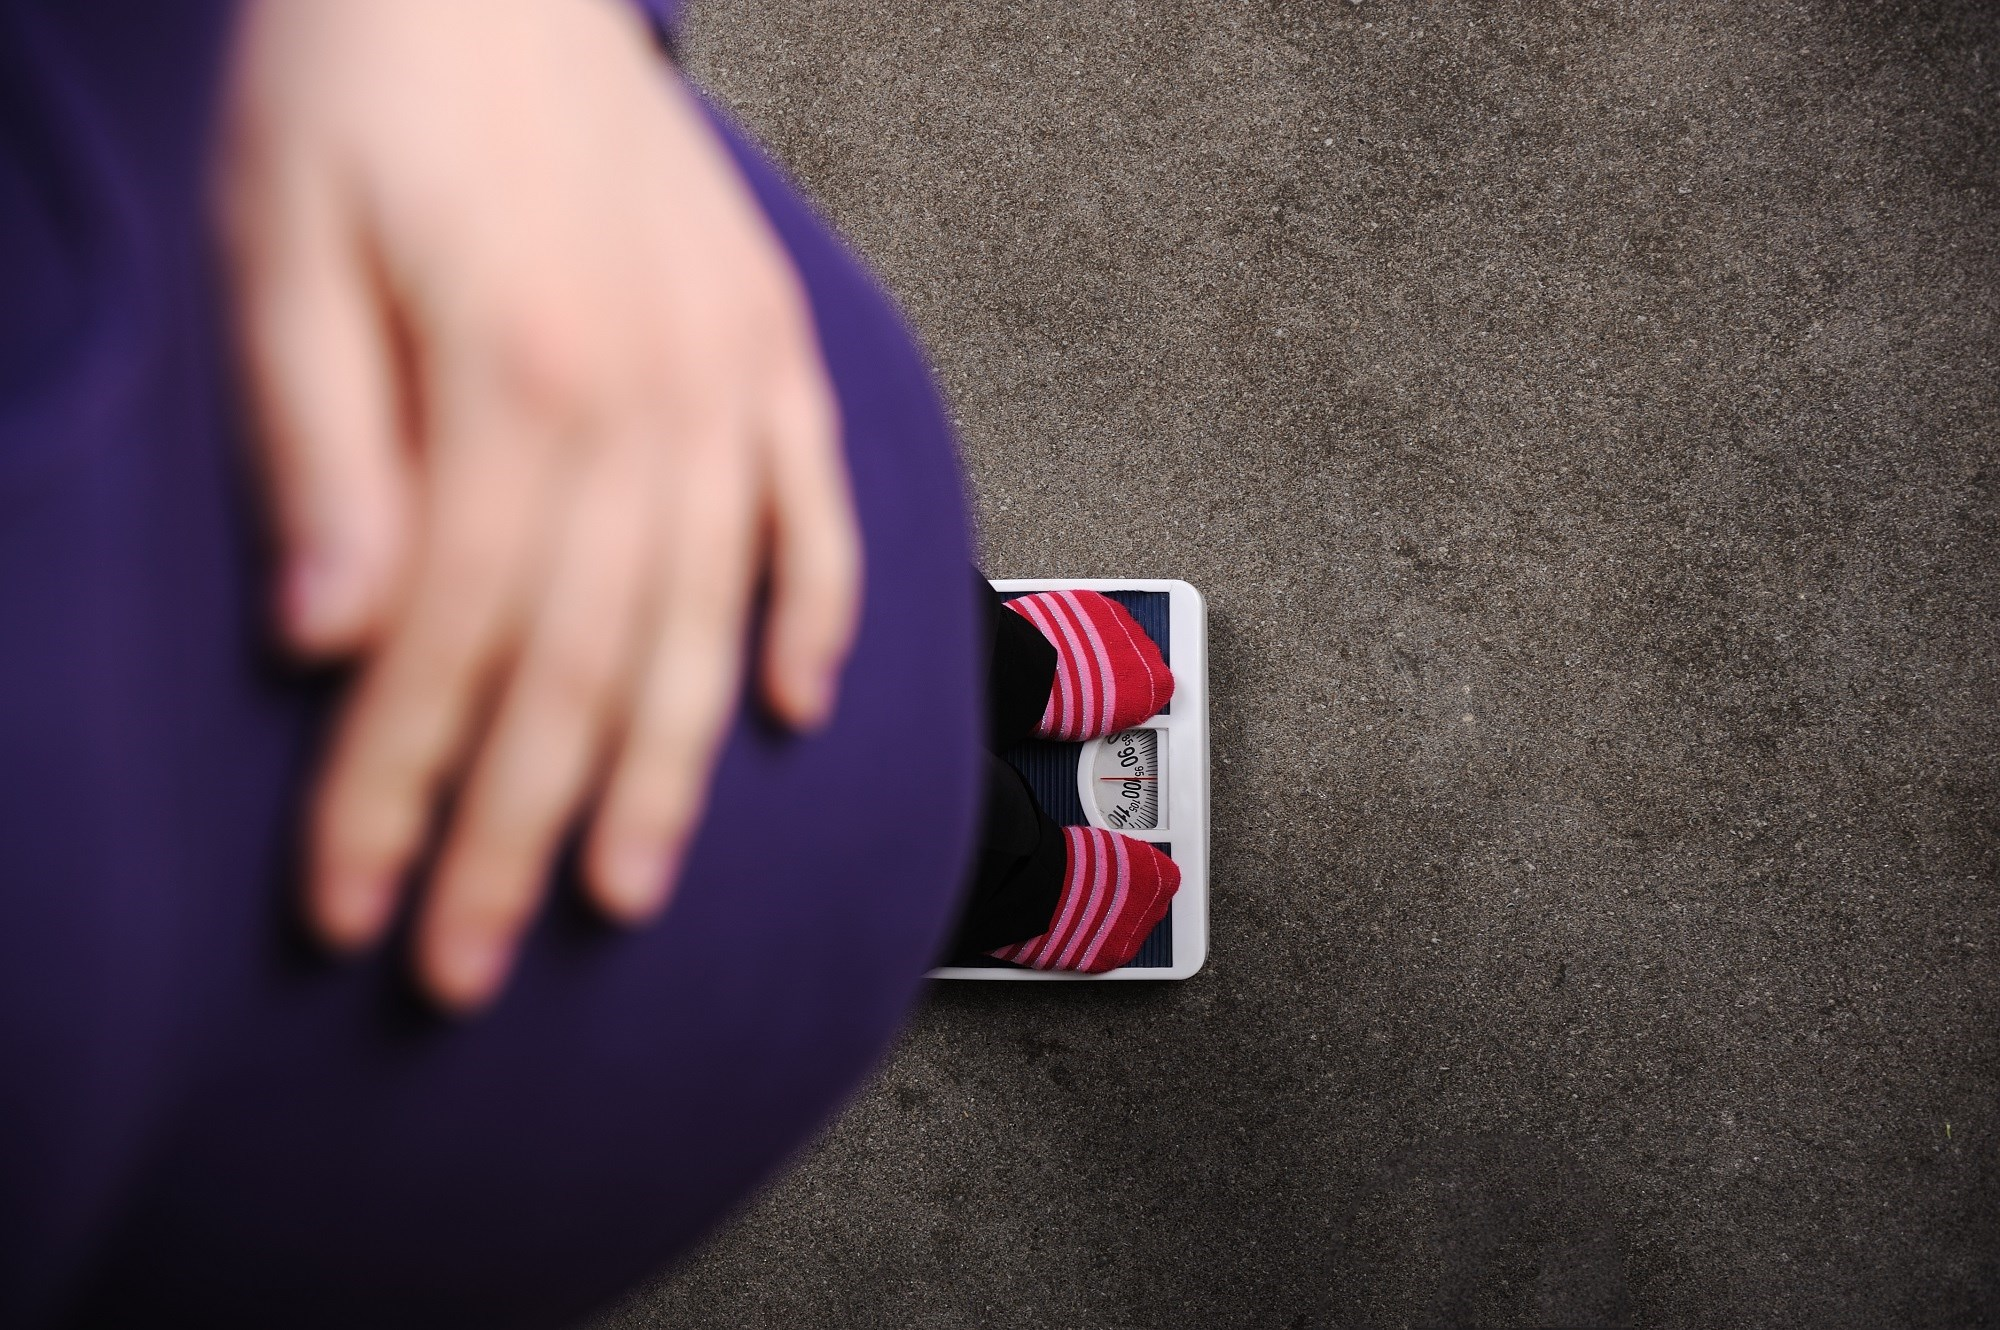 Large For Gestational Age a Strong Predictor of Overweight, Obesity in Childhood